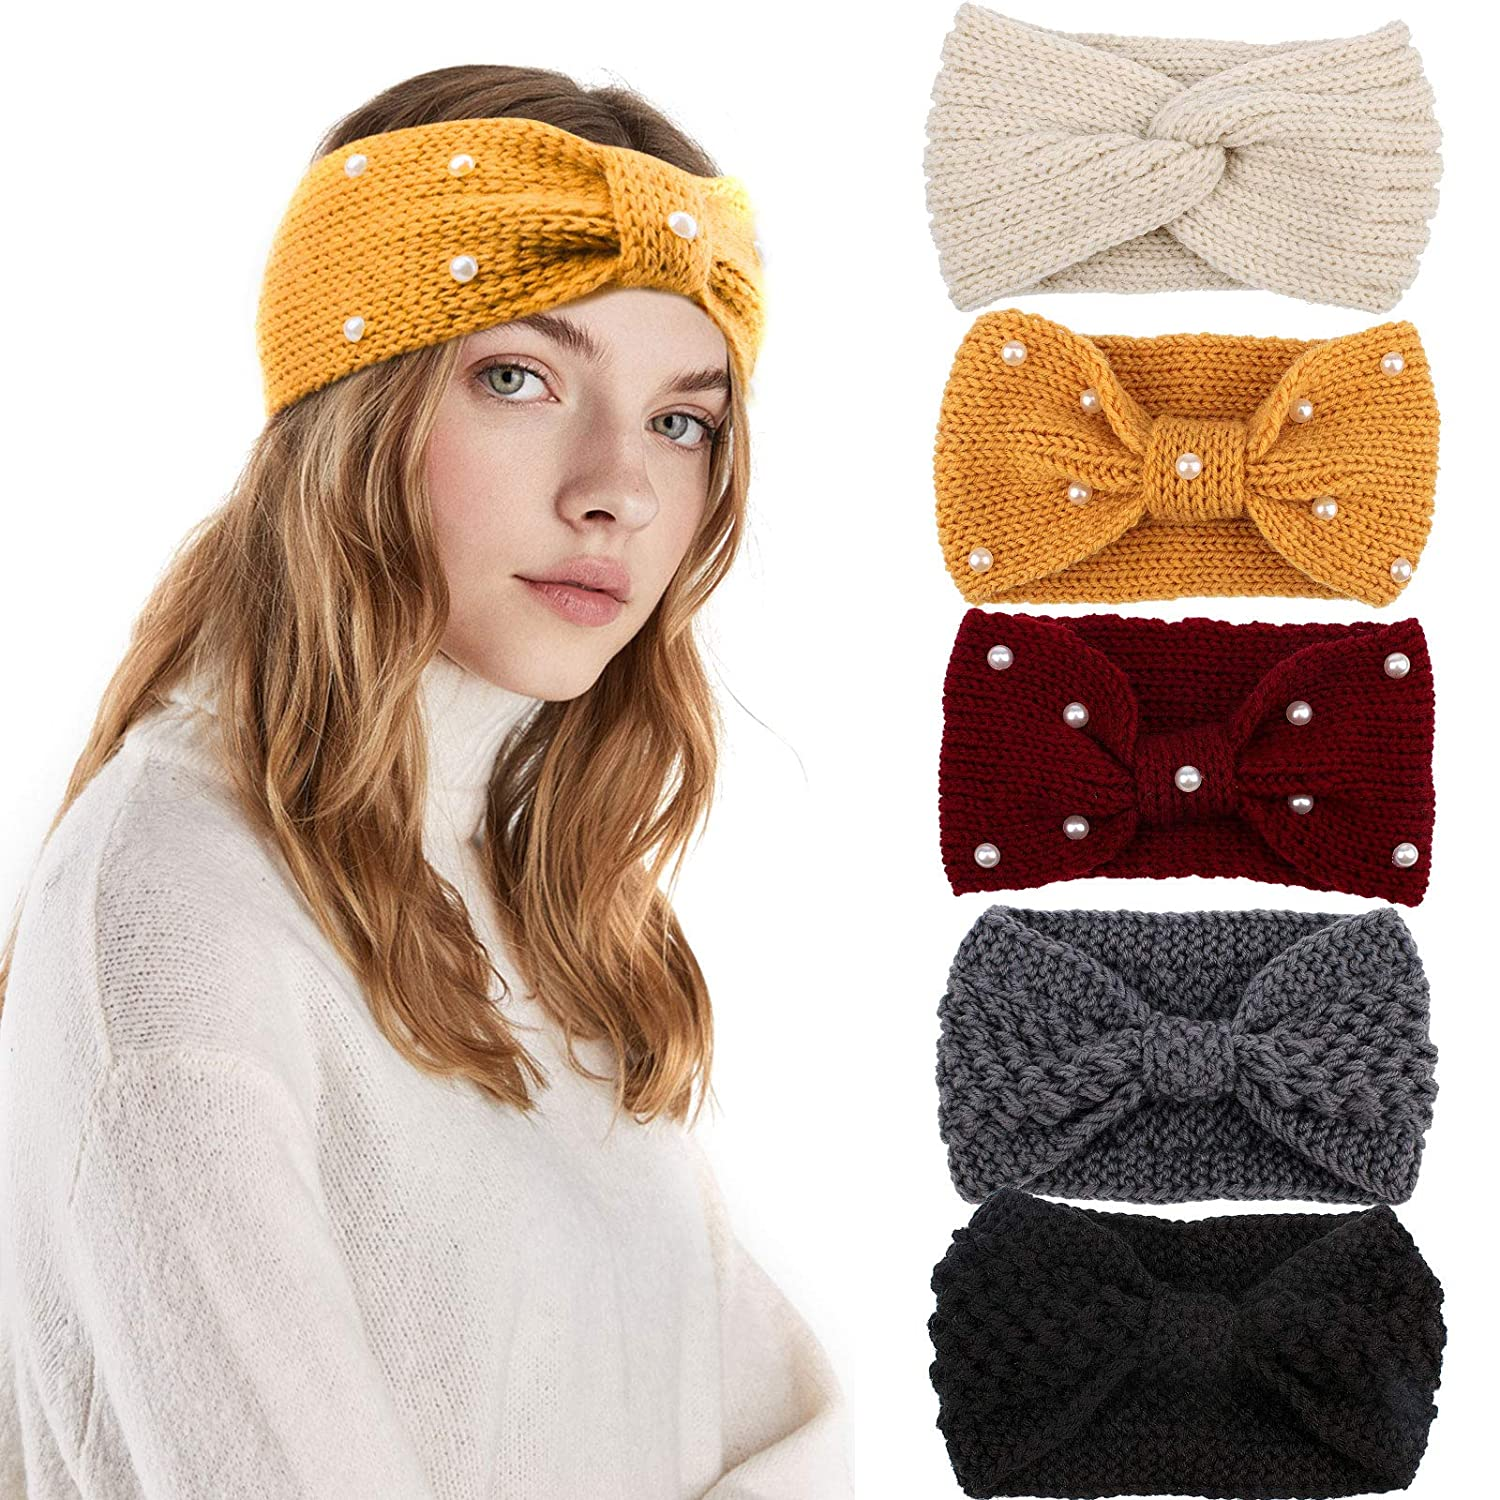 CIEHER Winter Headbands for Women,Crochet Turban Headbands for Women, Stretch Knit Wide Headbands Winter Ear Warmer Thick Head Band,Head Warmer for Women Soft,Vintage Bow Hairband with Pearl